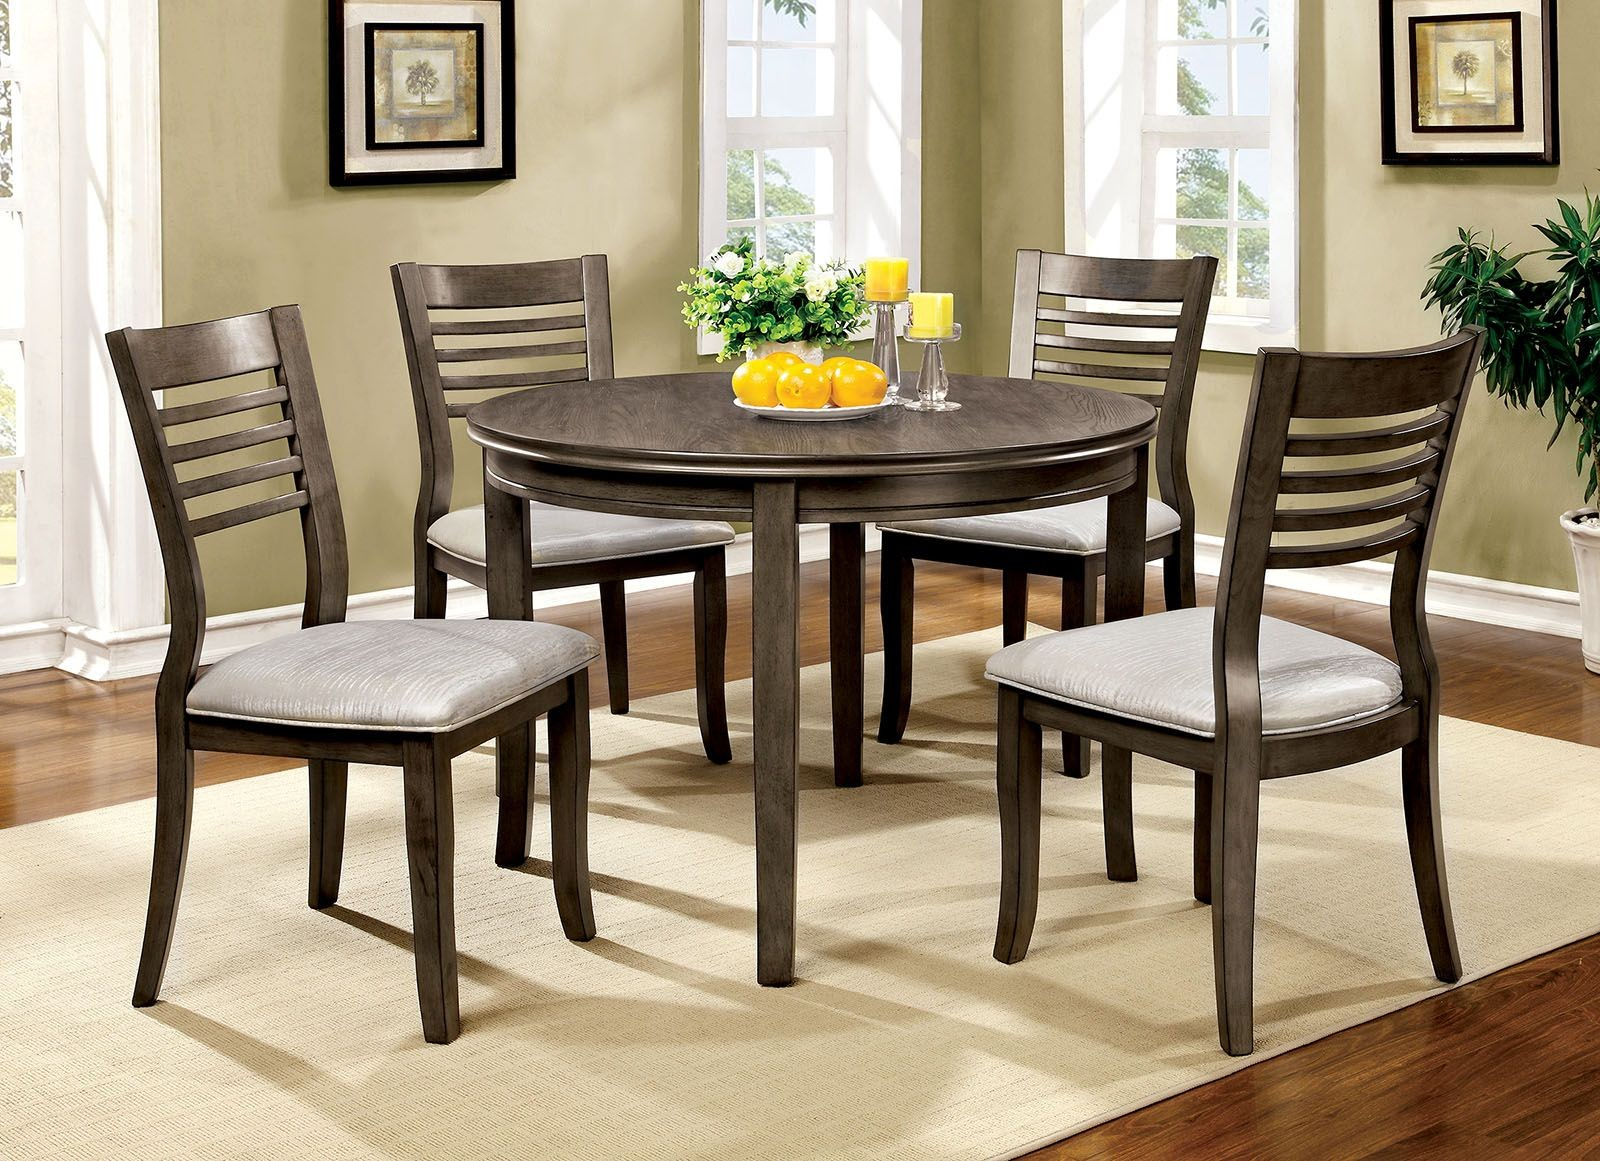 Dwight iii 42 round dining room set from furniture of for Dining room tables 42 round